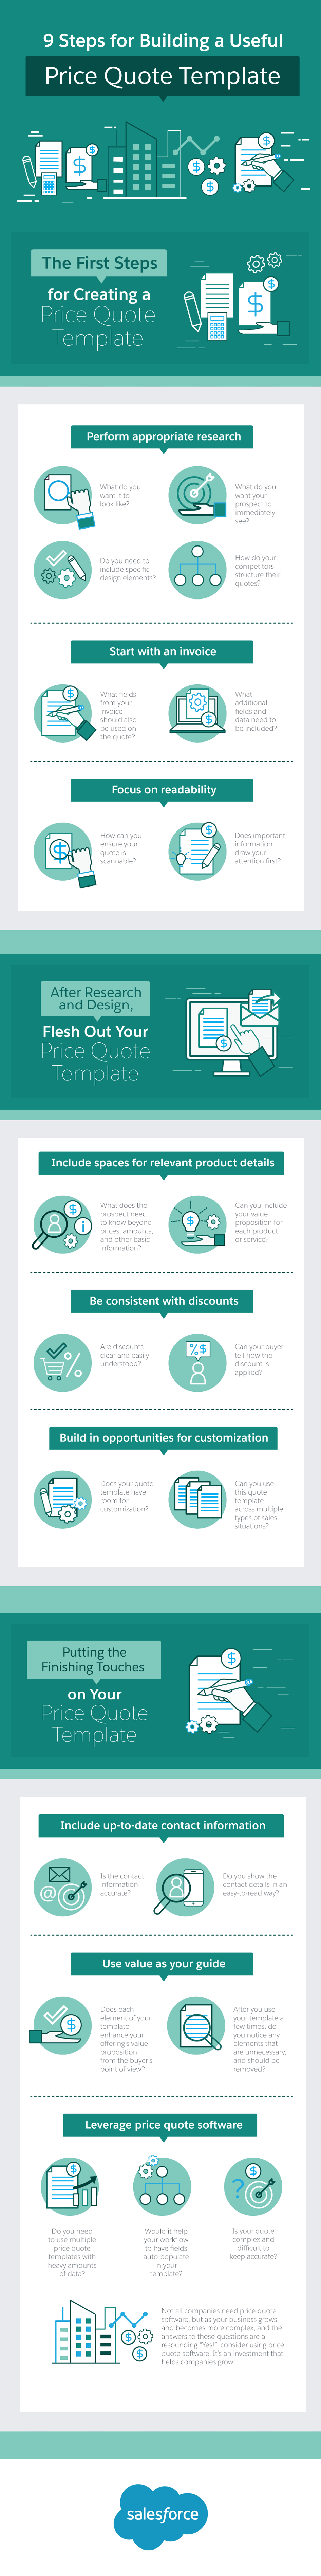 9 Steps for Building a Useful Price Quote Template